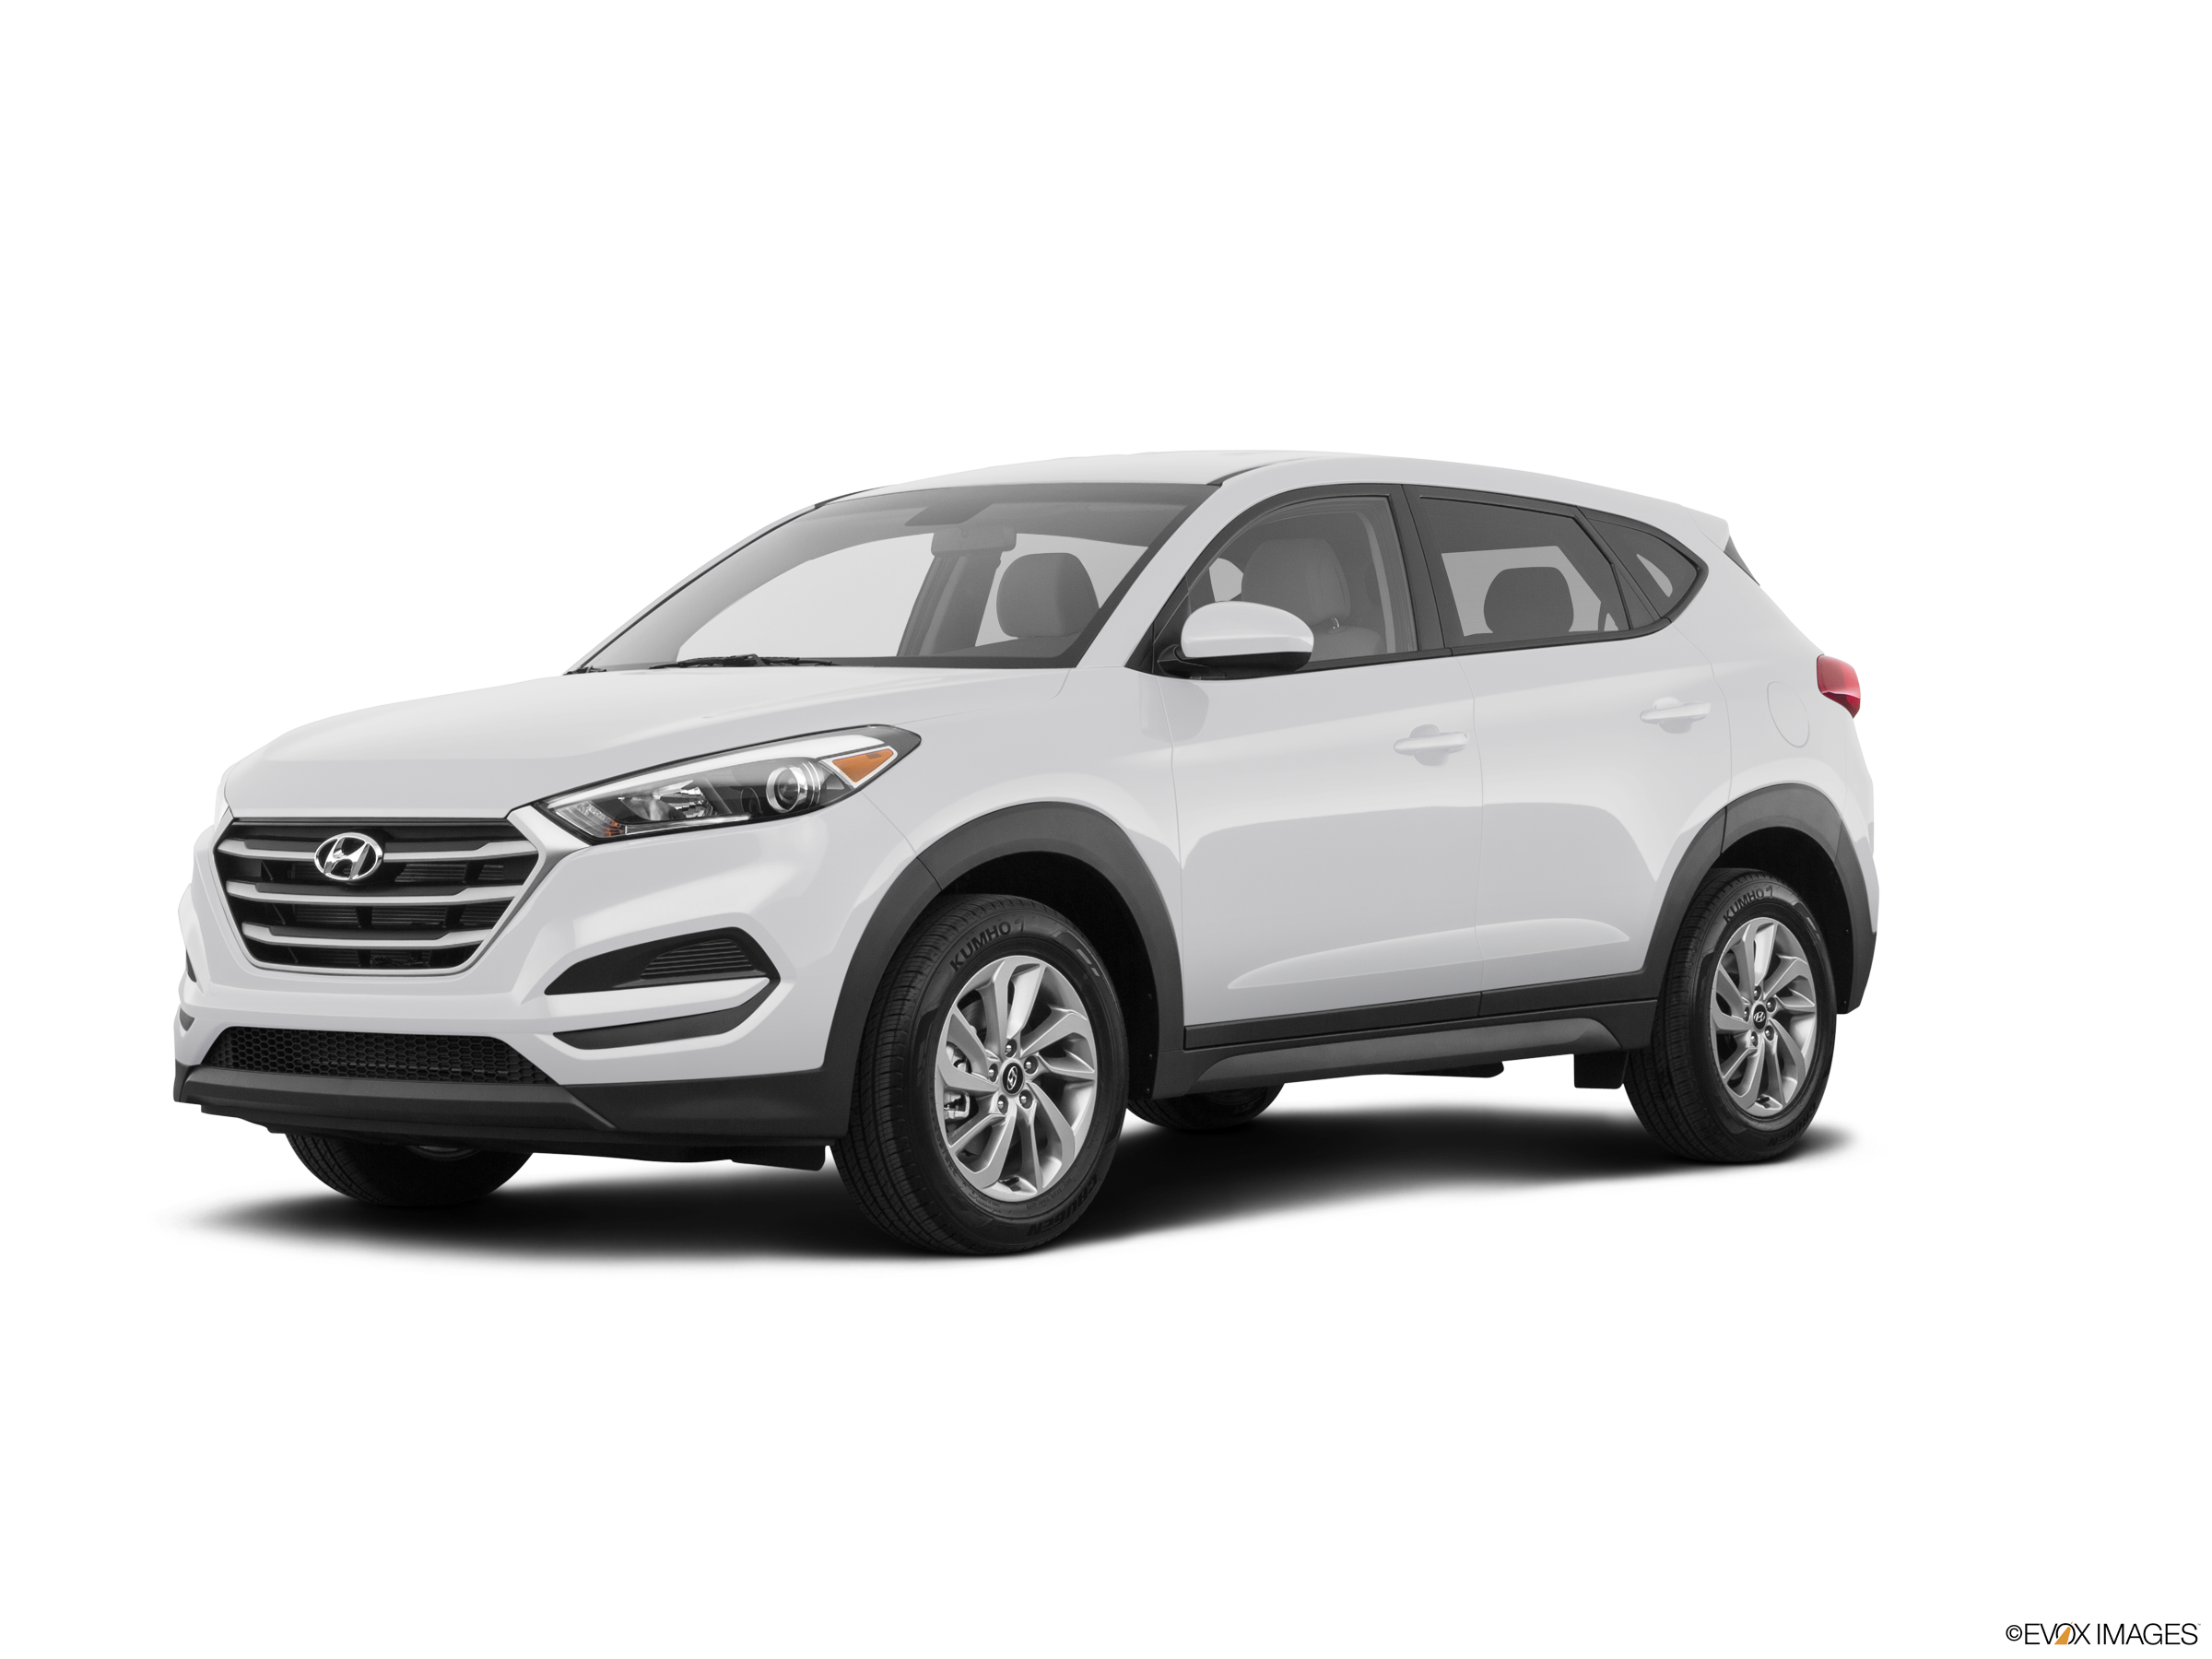 25 Best-Selling SUVs of 2018 - Hyundai Tucson